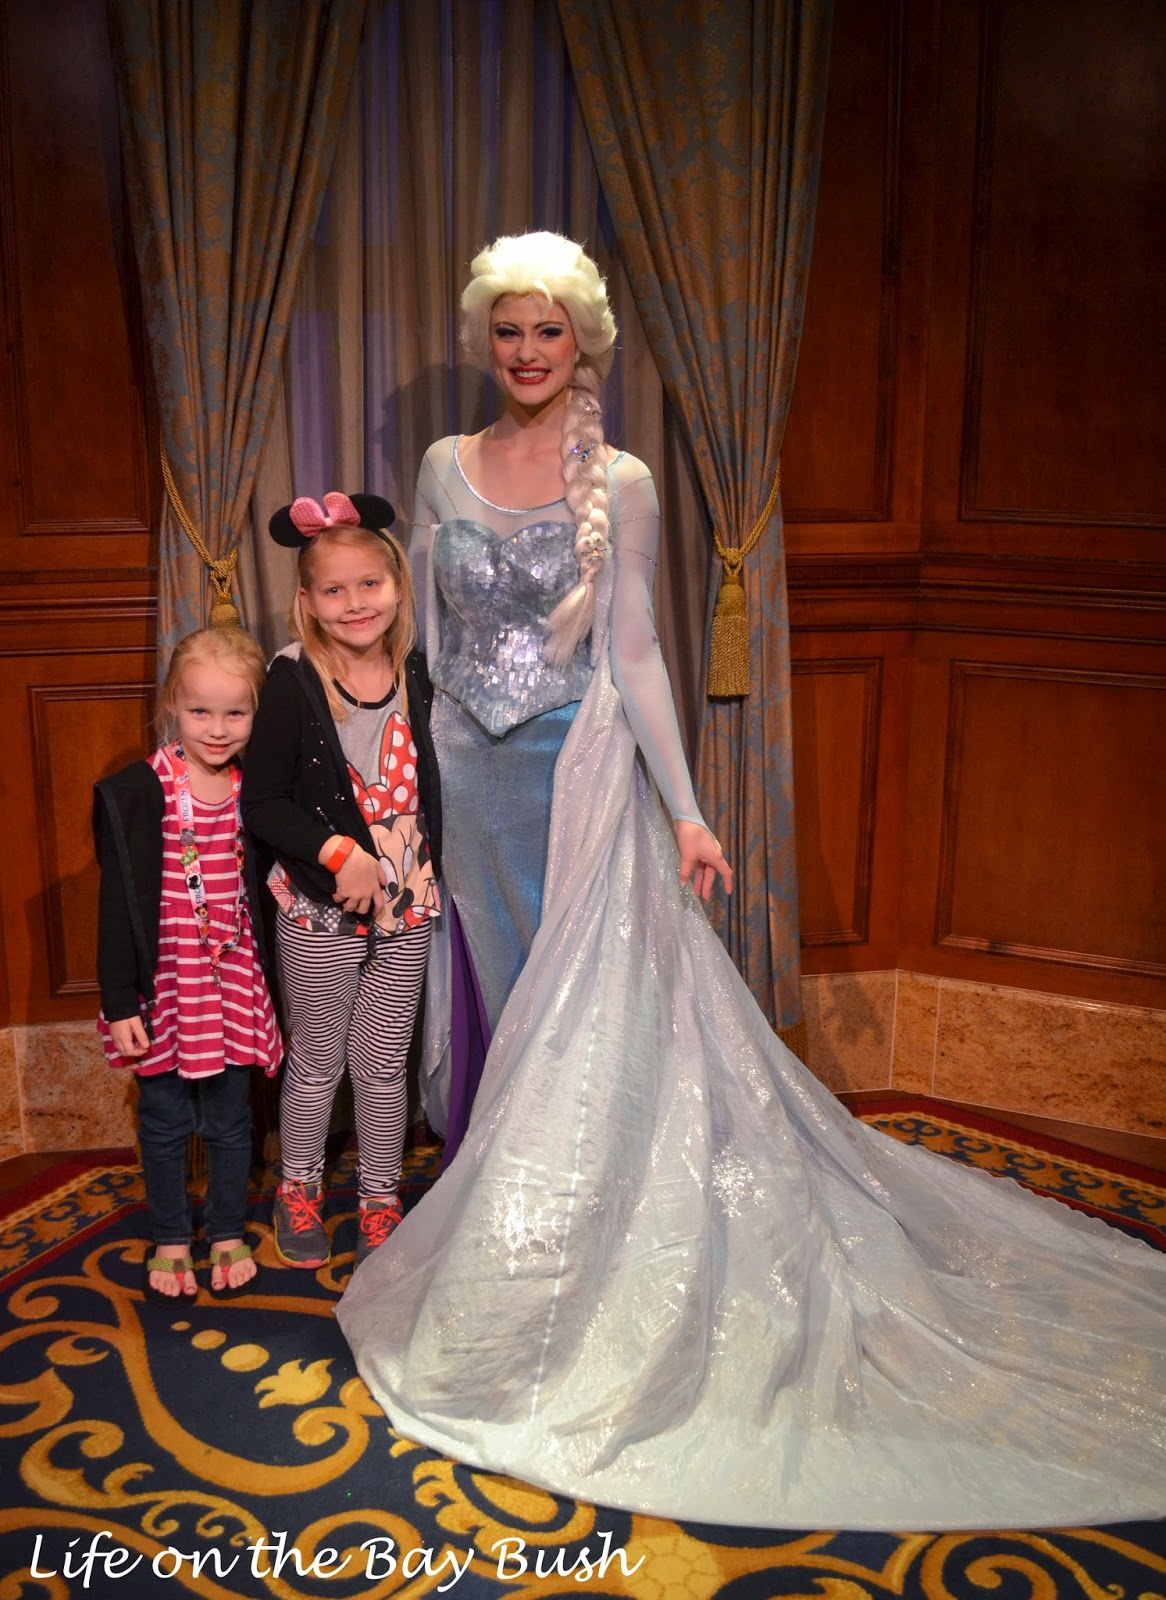 Meeting Elsa at the Magic Kingdom